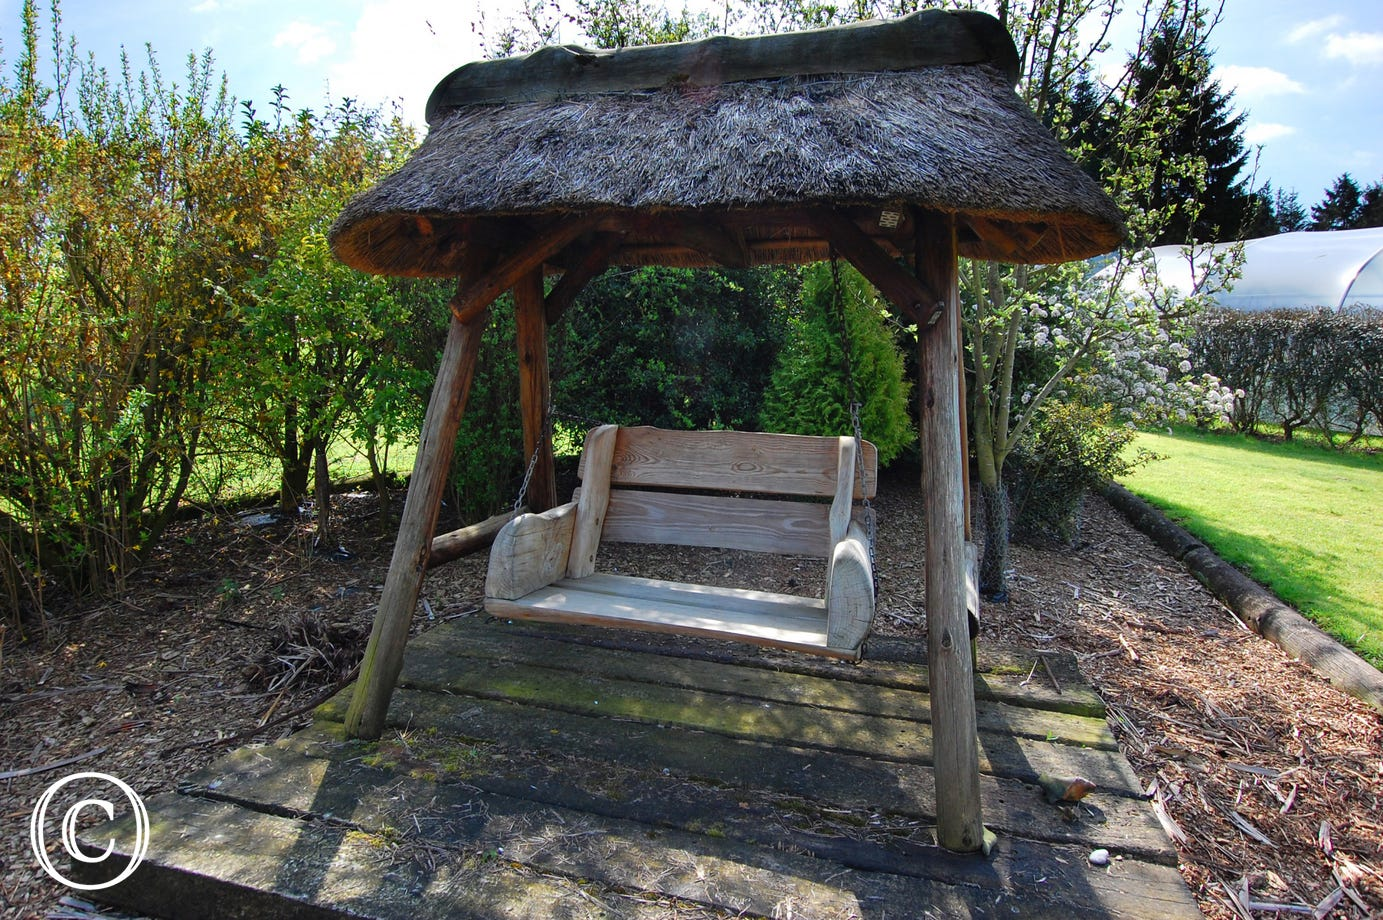 A thatch roof swing seat beside the pond